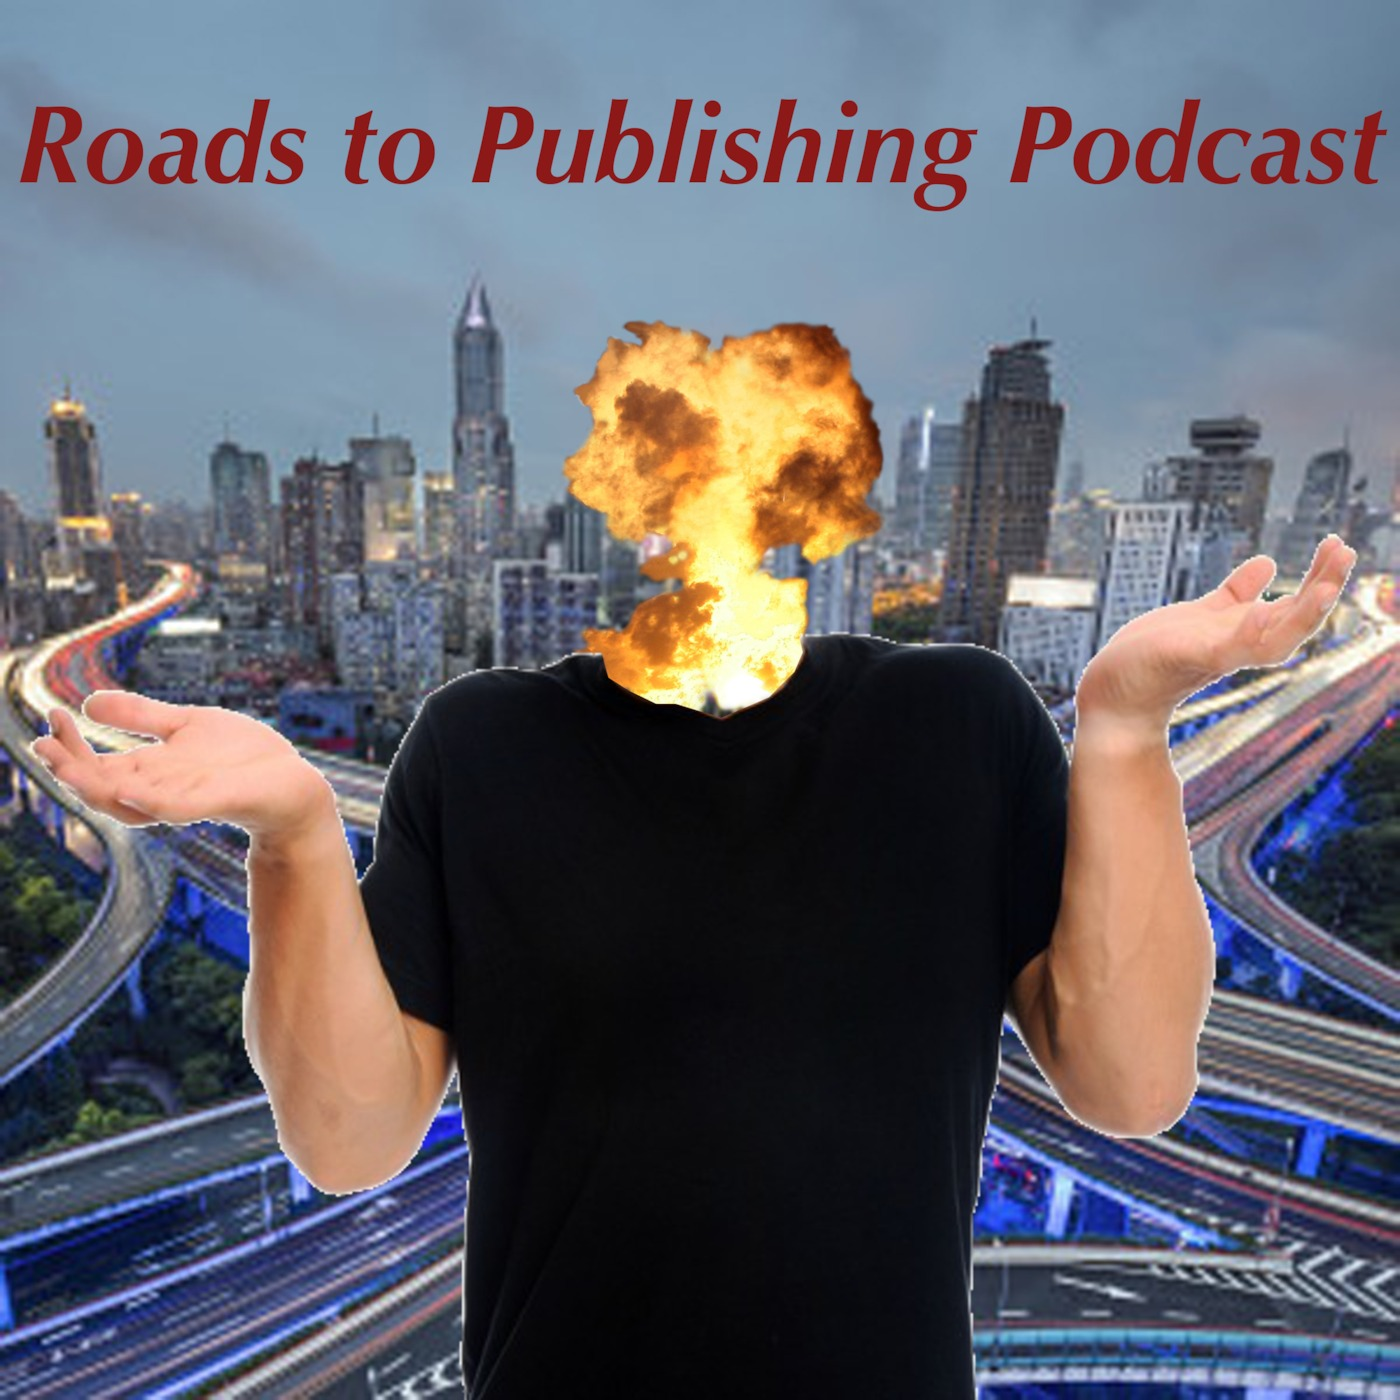 Roads to Publishing Podcast